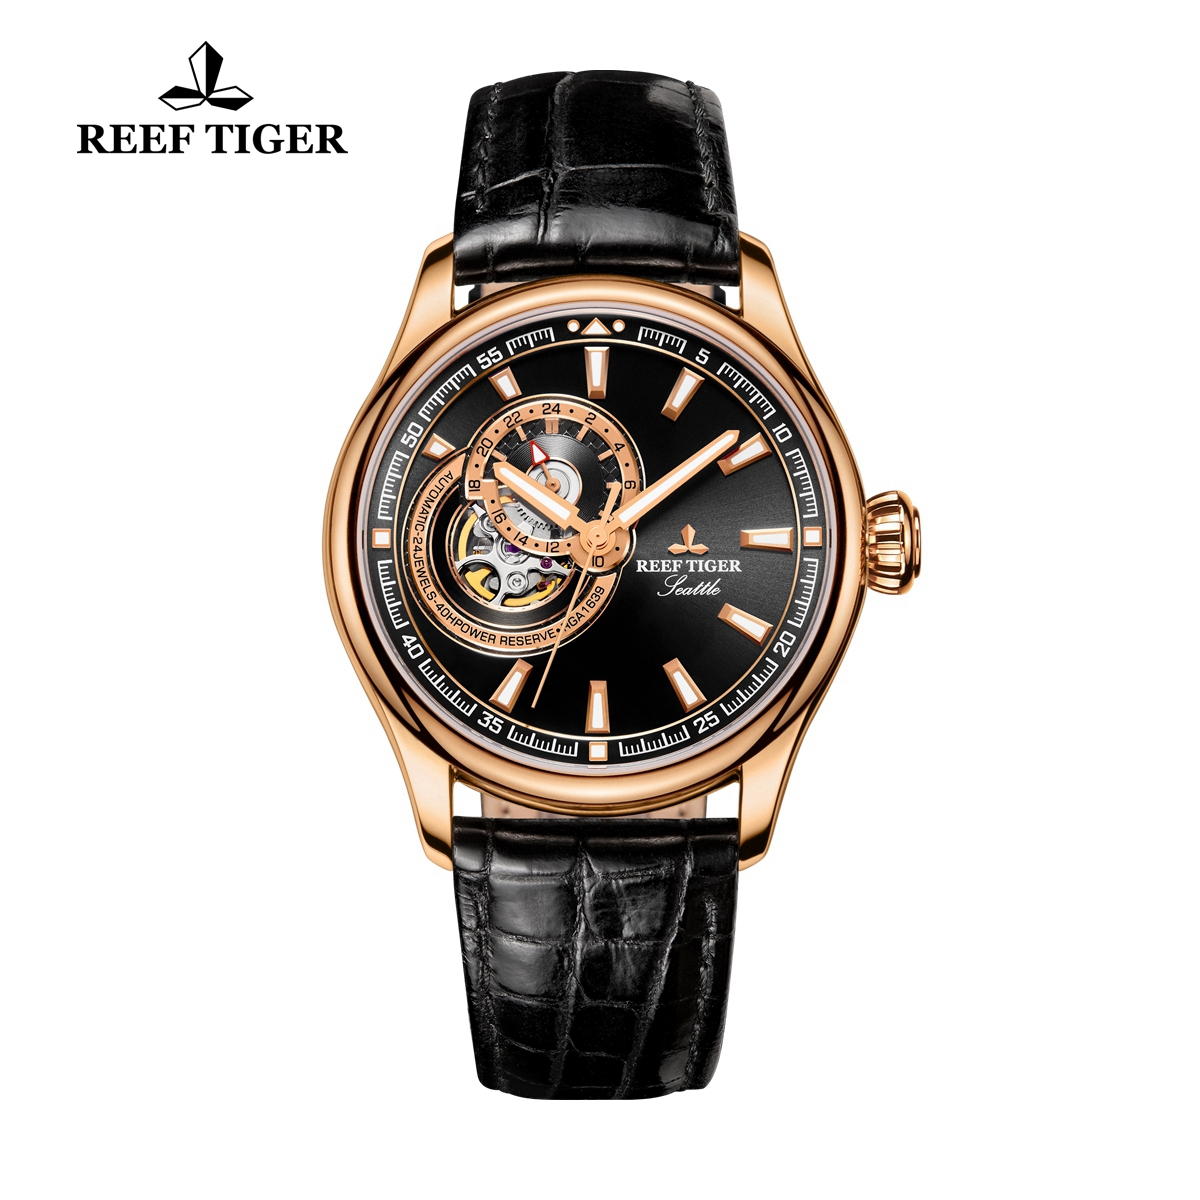 Reef Tiger Seattle Sea Hawk Dress Automatic Watch Rose Gold Black Dial Black Leather Strap RGA1639-PBB